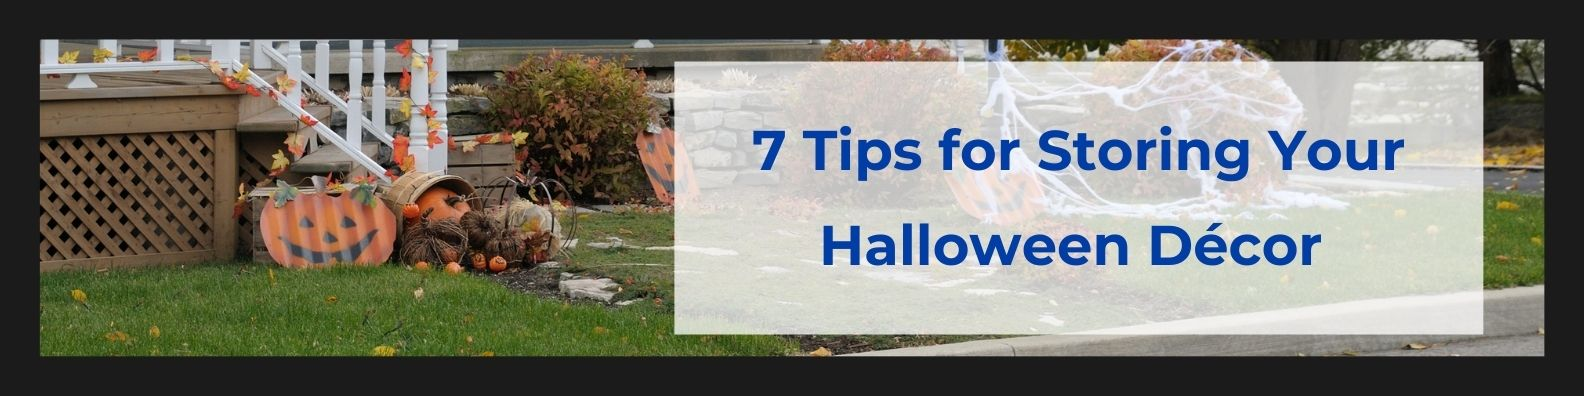 7 Tips for Storing Your Halloween Décor